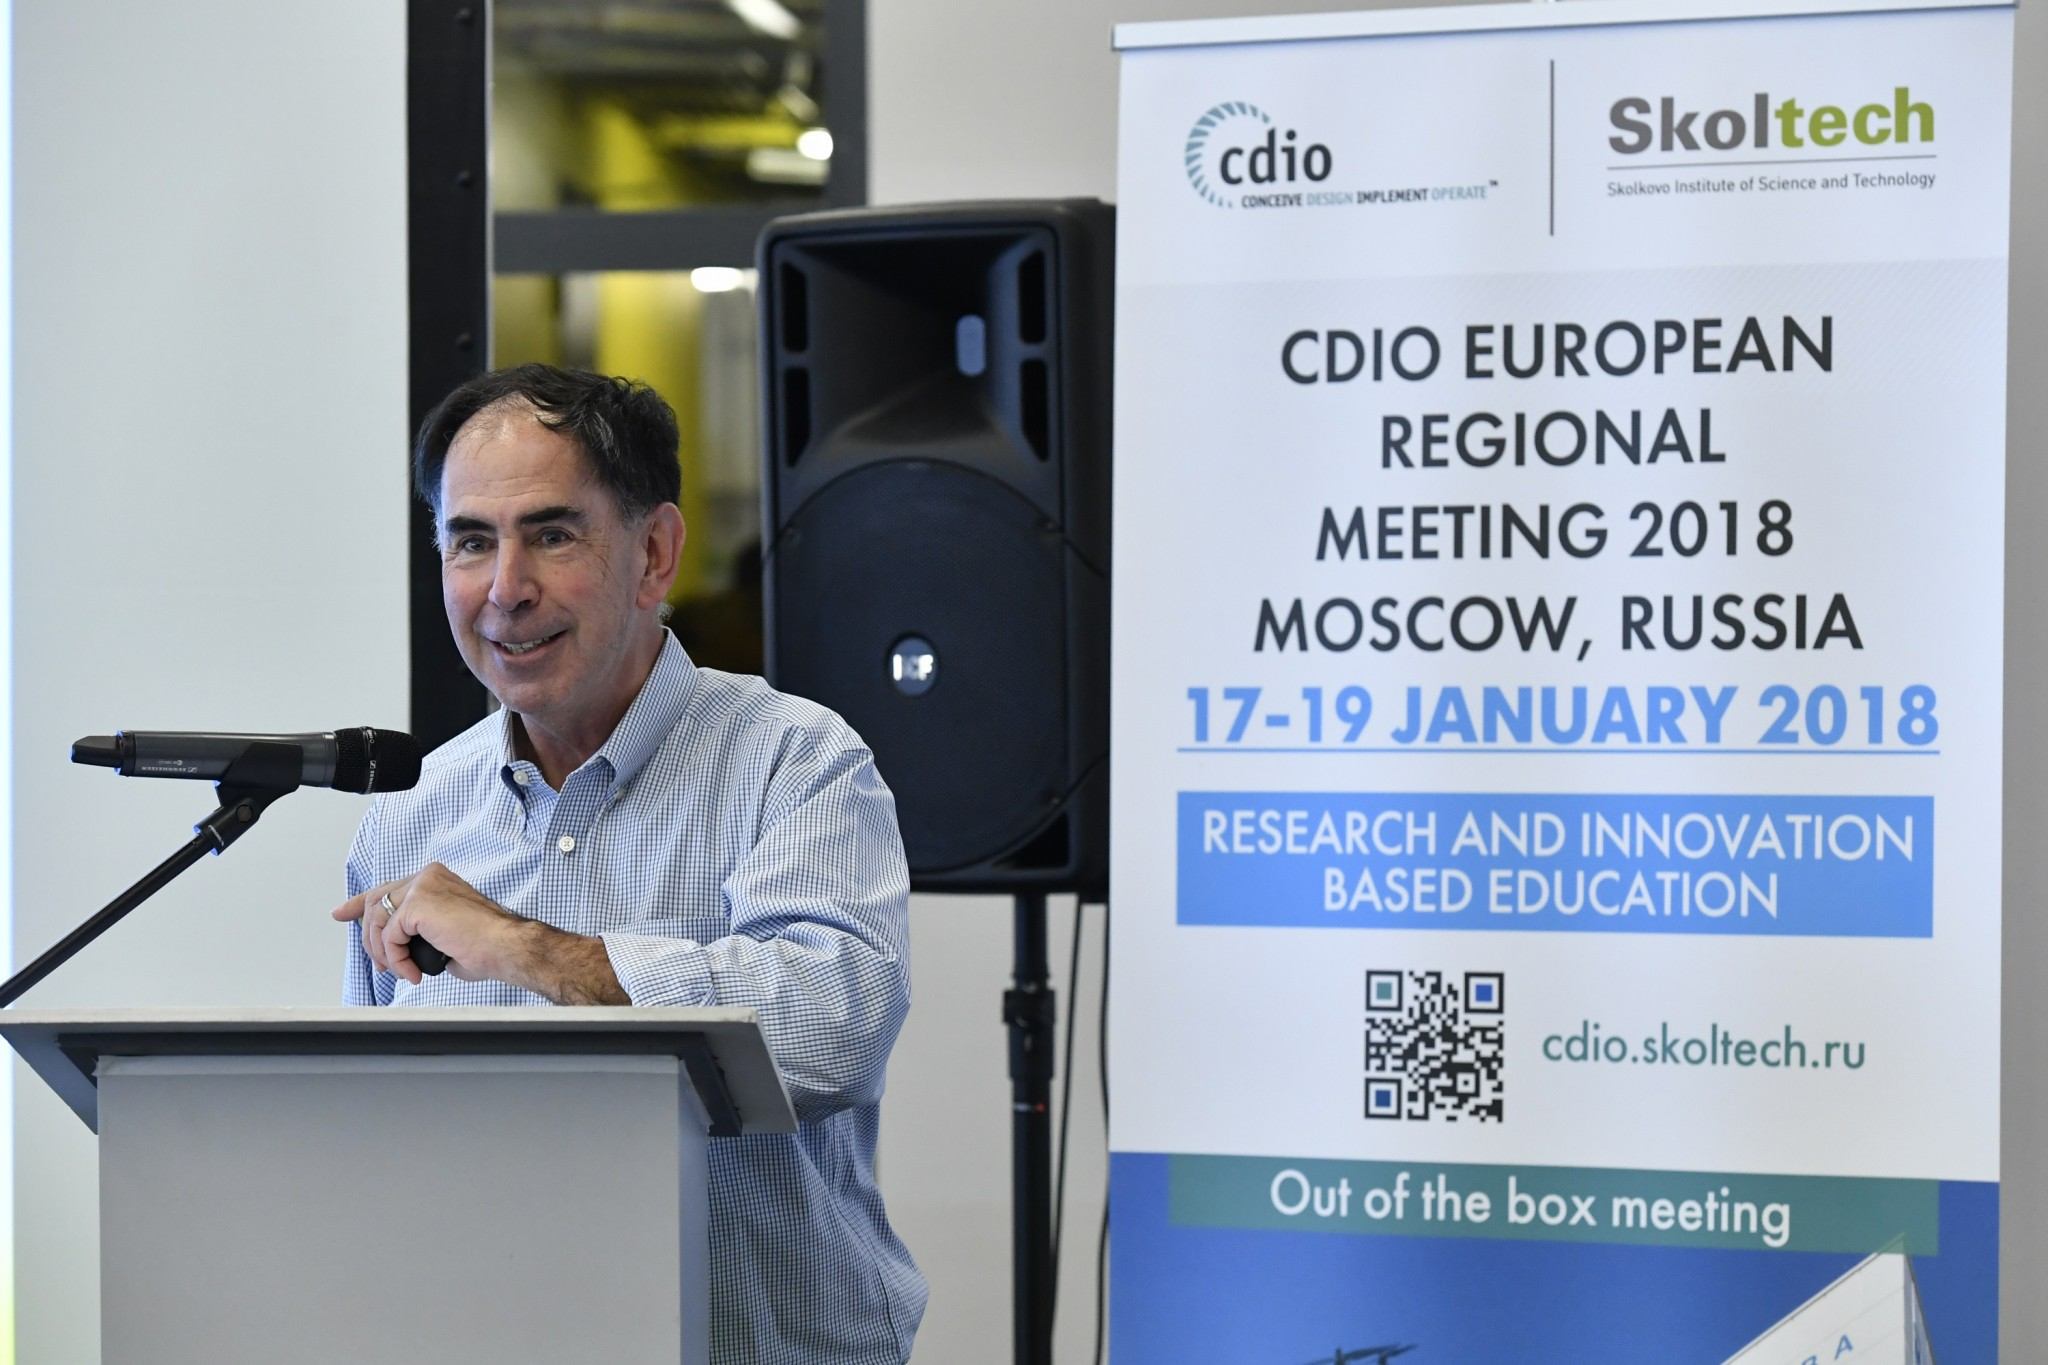 MIT Professor and CDIO Co-Founder Edward Crawley speaks before a rapt audience. Photo: Skoltech.